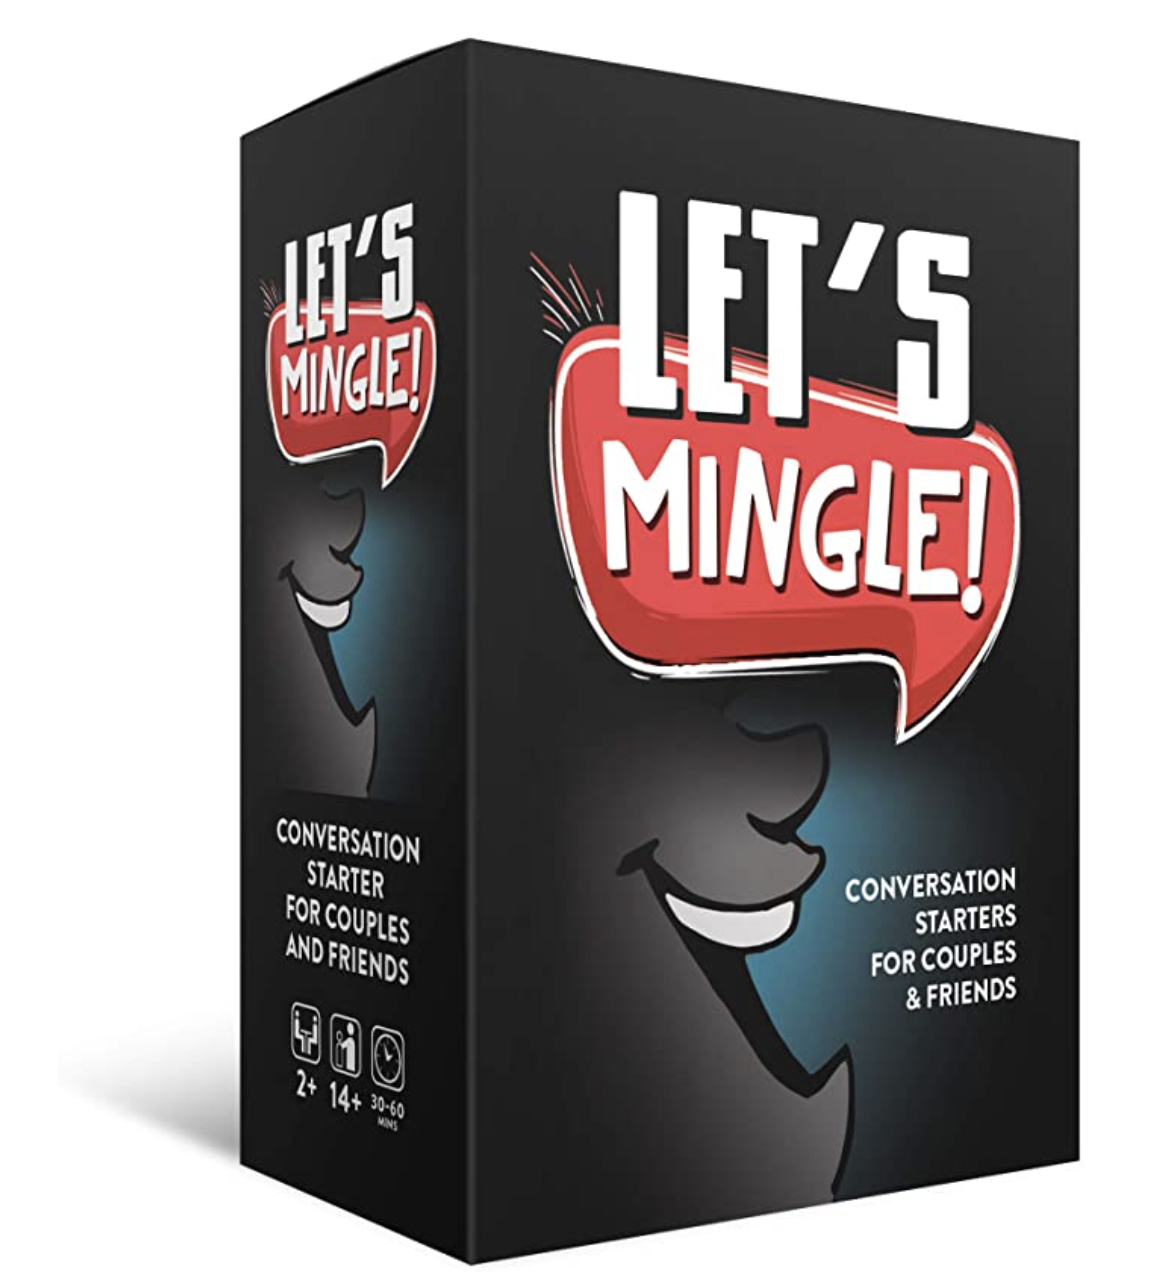 At School, Work or Home, 'Let's Mingle Conversation Starter Cards' by Fun Tribe Crew Makes Conversations Fun Again Even During The Pandemic.